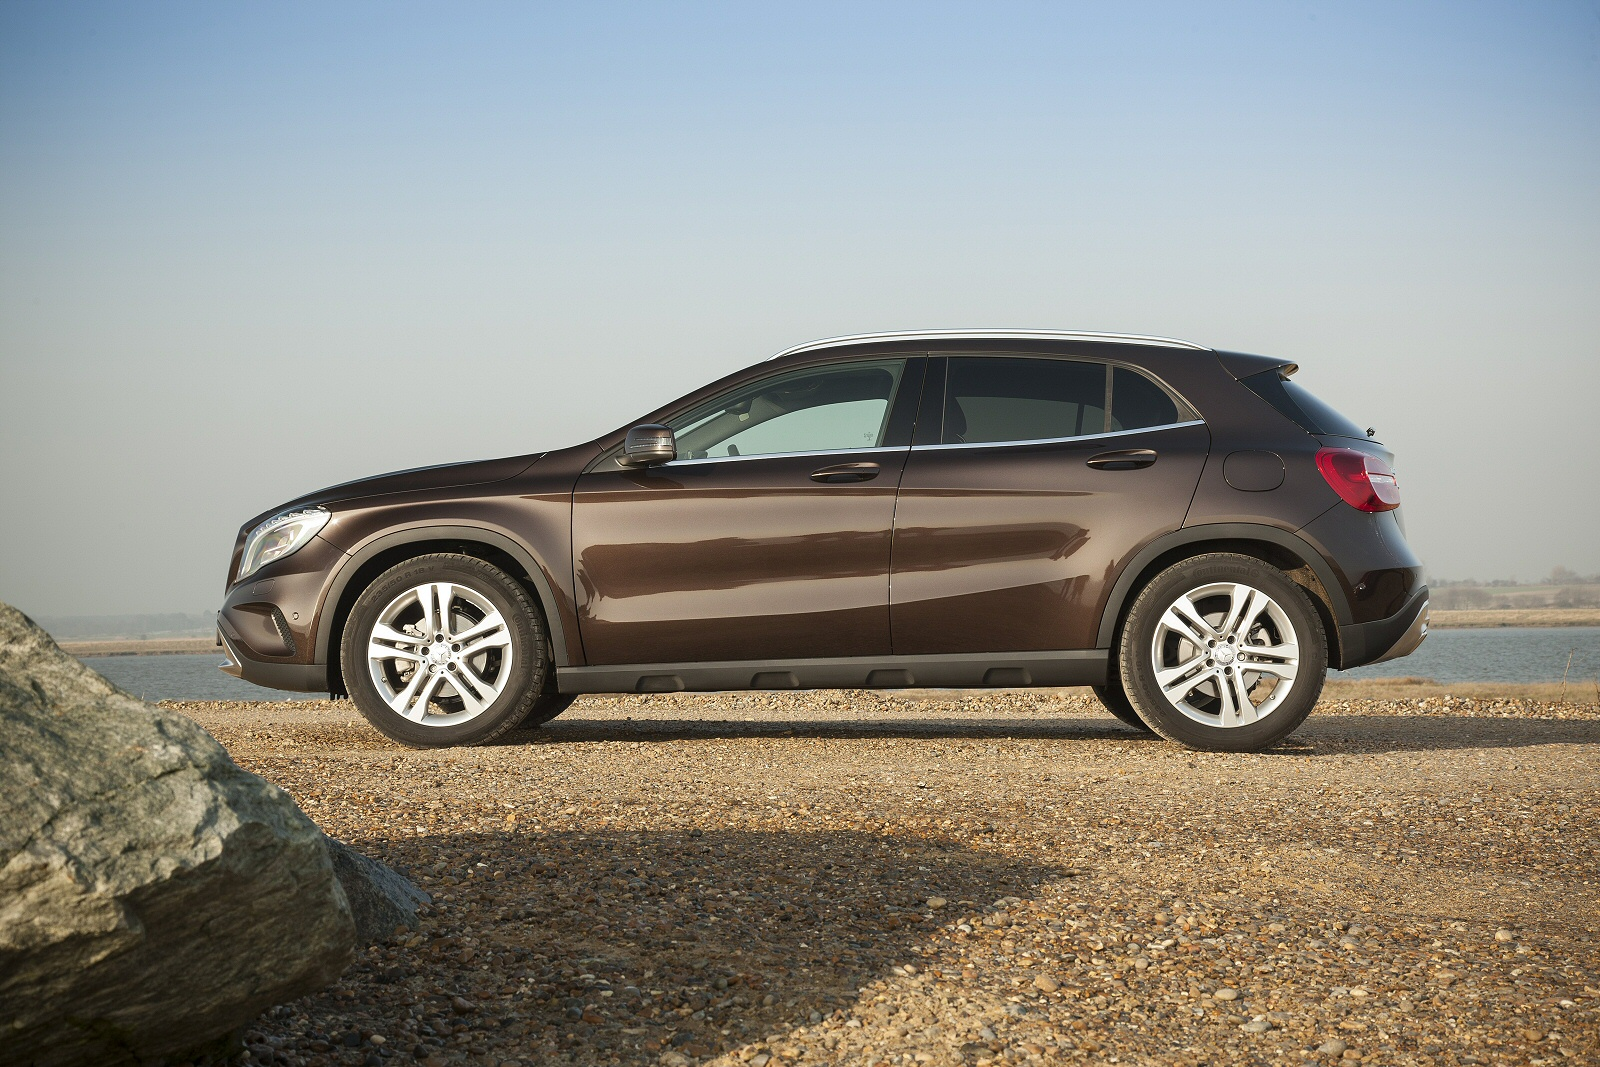 Polished crossover mercedes benz gla 220d 4matic for Mercedes benz gla crossover